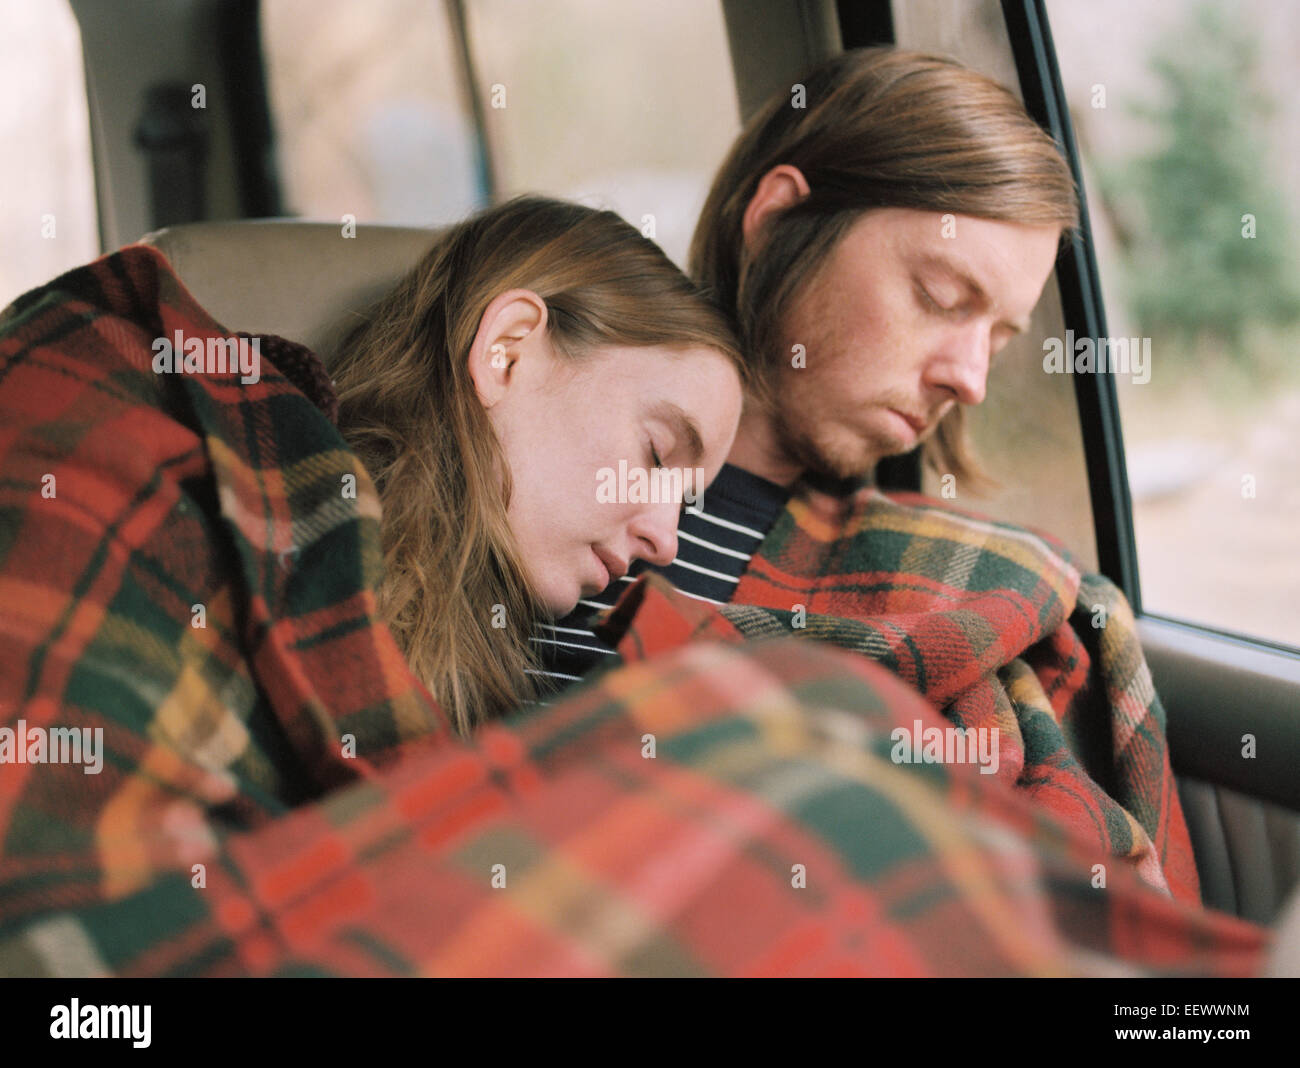 A couple taking a nap in their car, covered by a blanket. - Stock Image